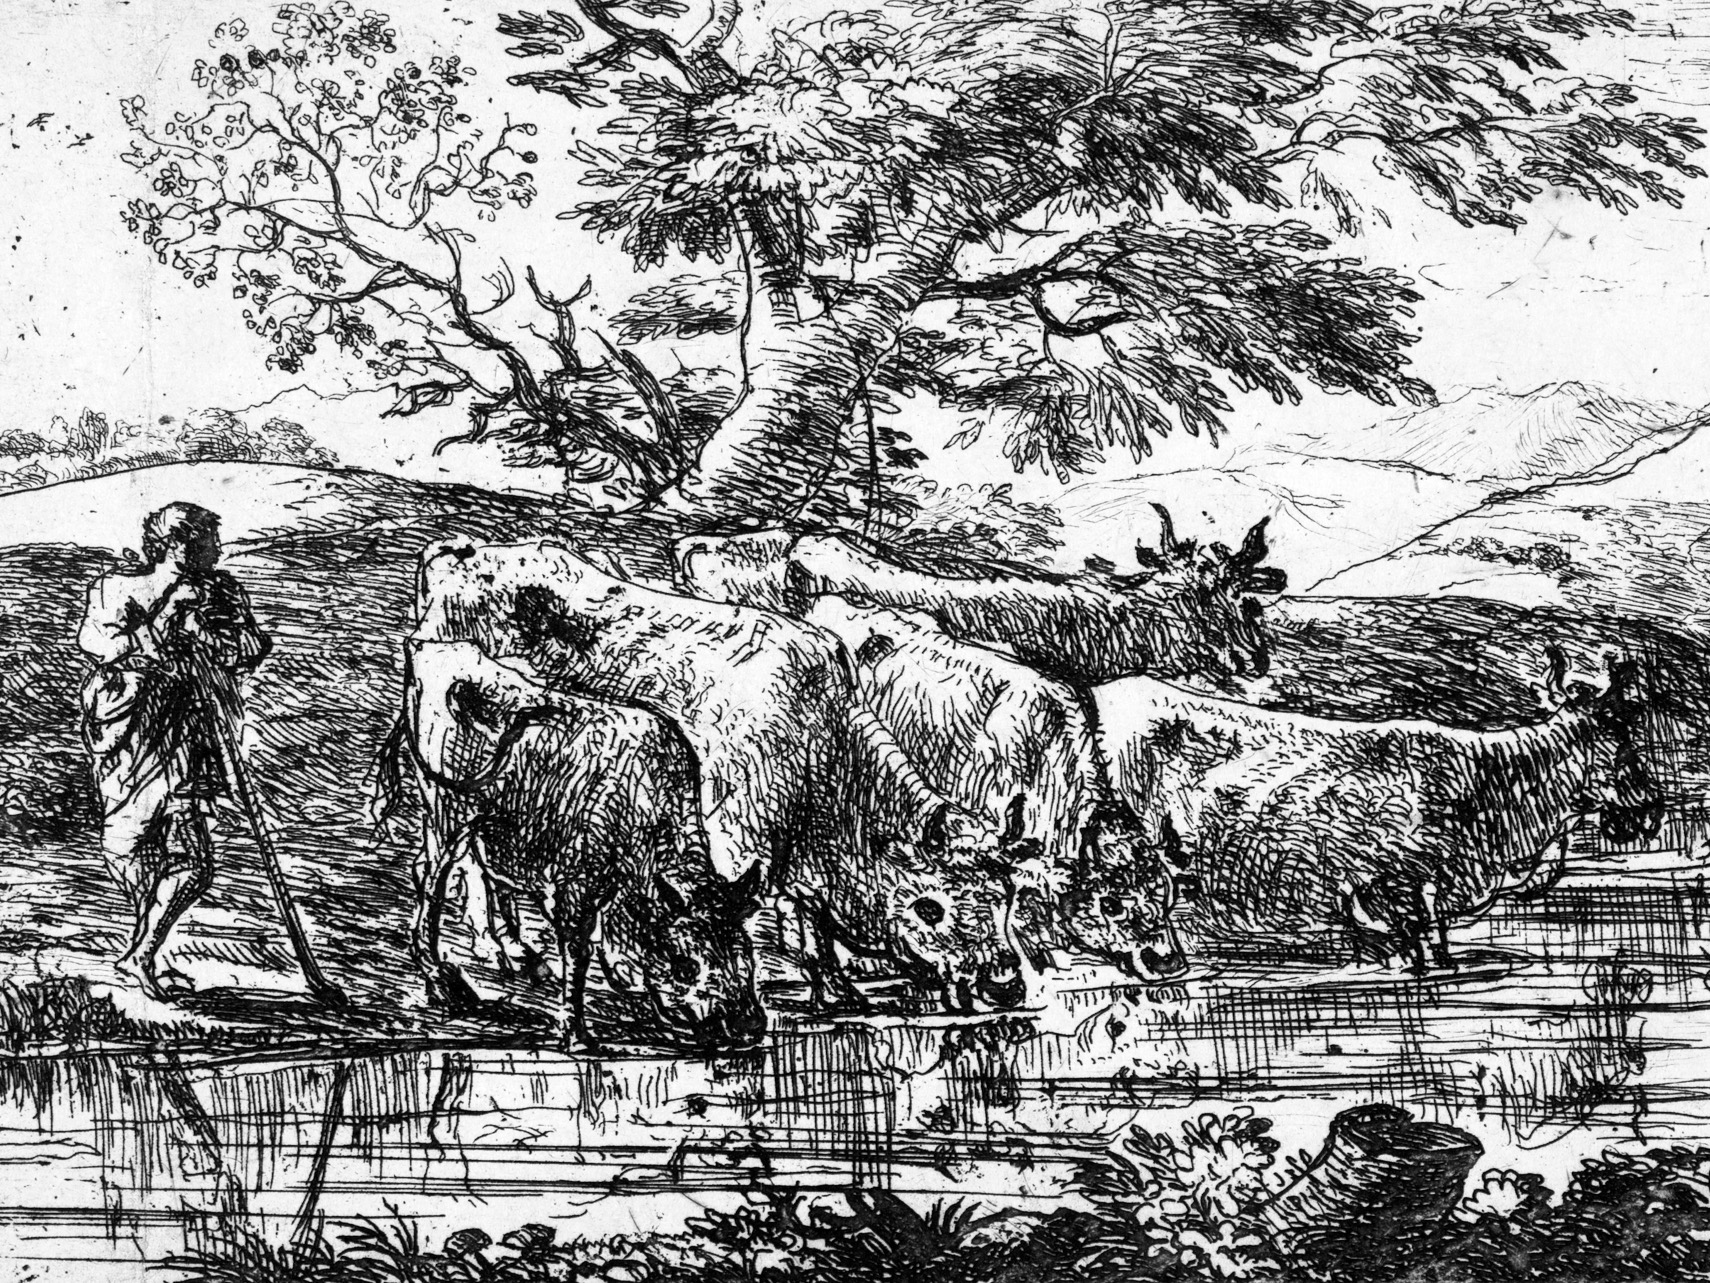 Engraving of picturesque scene with cowherd & his cattle.